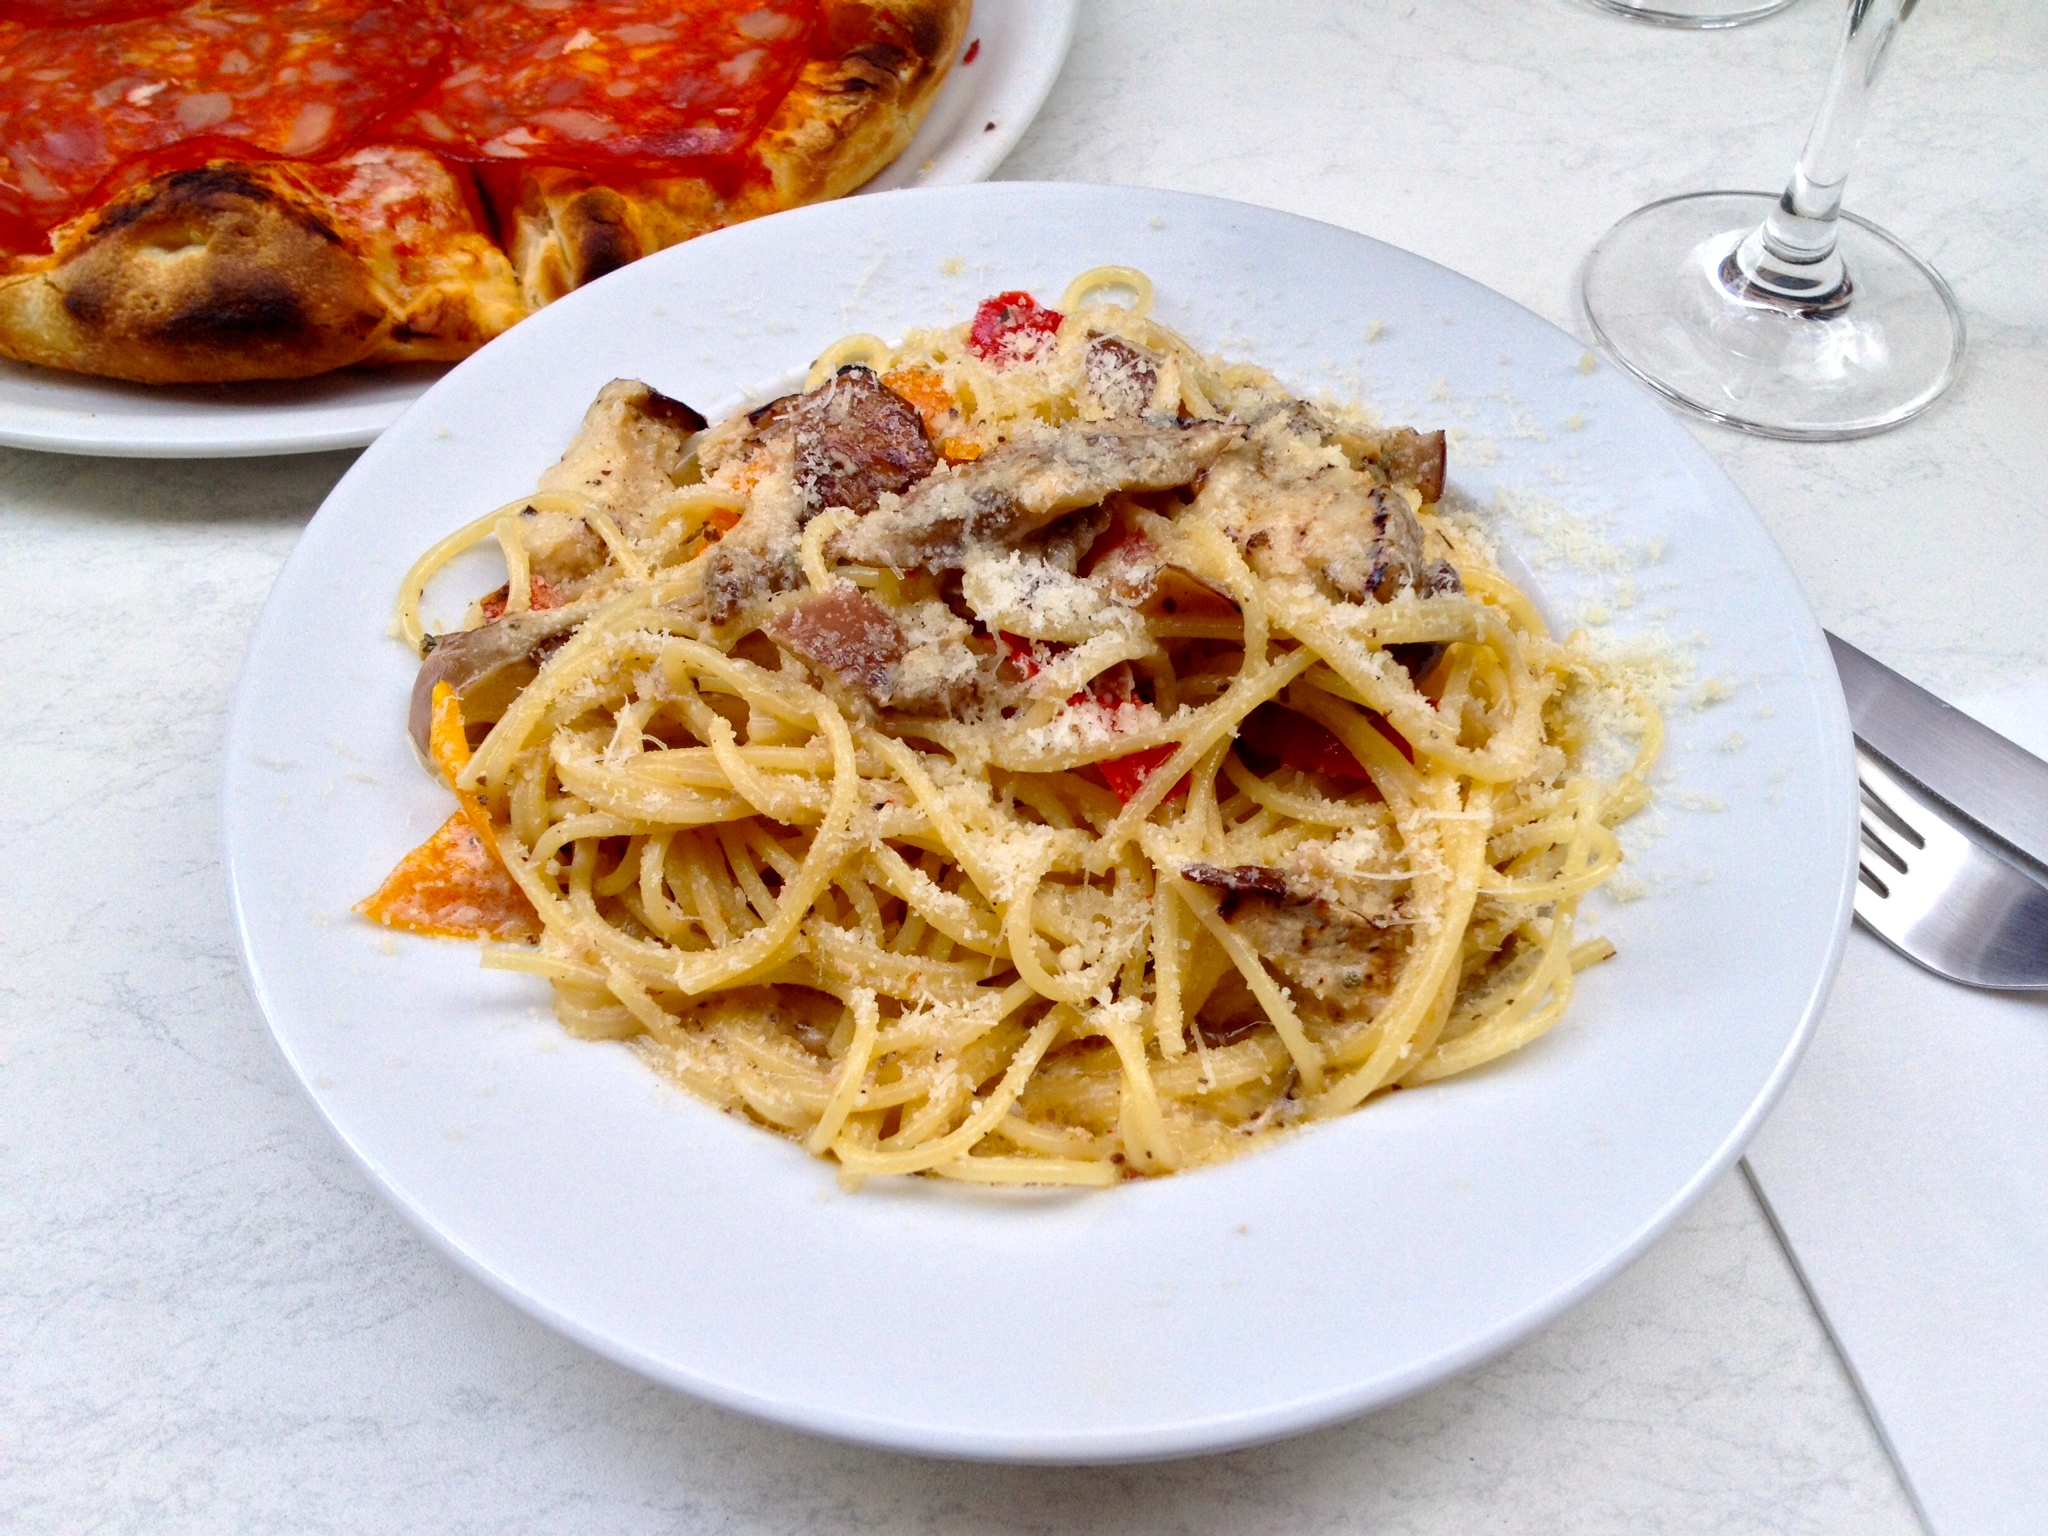 Spaghetti with eggplant, roasted peppers, capers, and parmesan